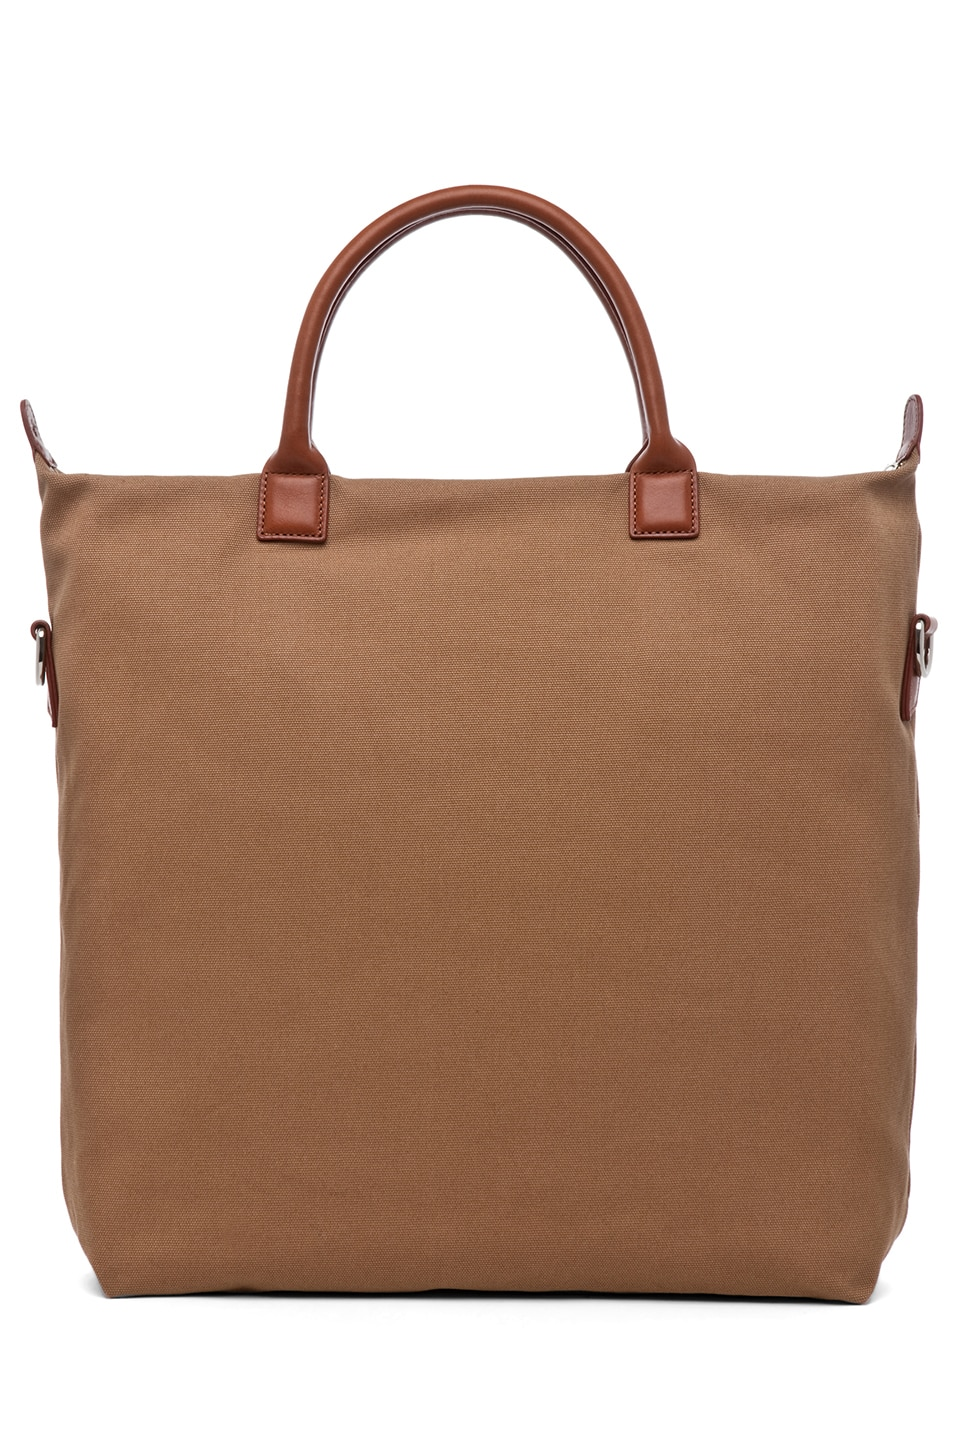 Image 2 of Want Les Essentiels De La Vie O'Hare Shopper Tote in Beige & Cognac